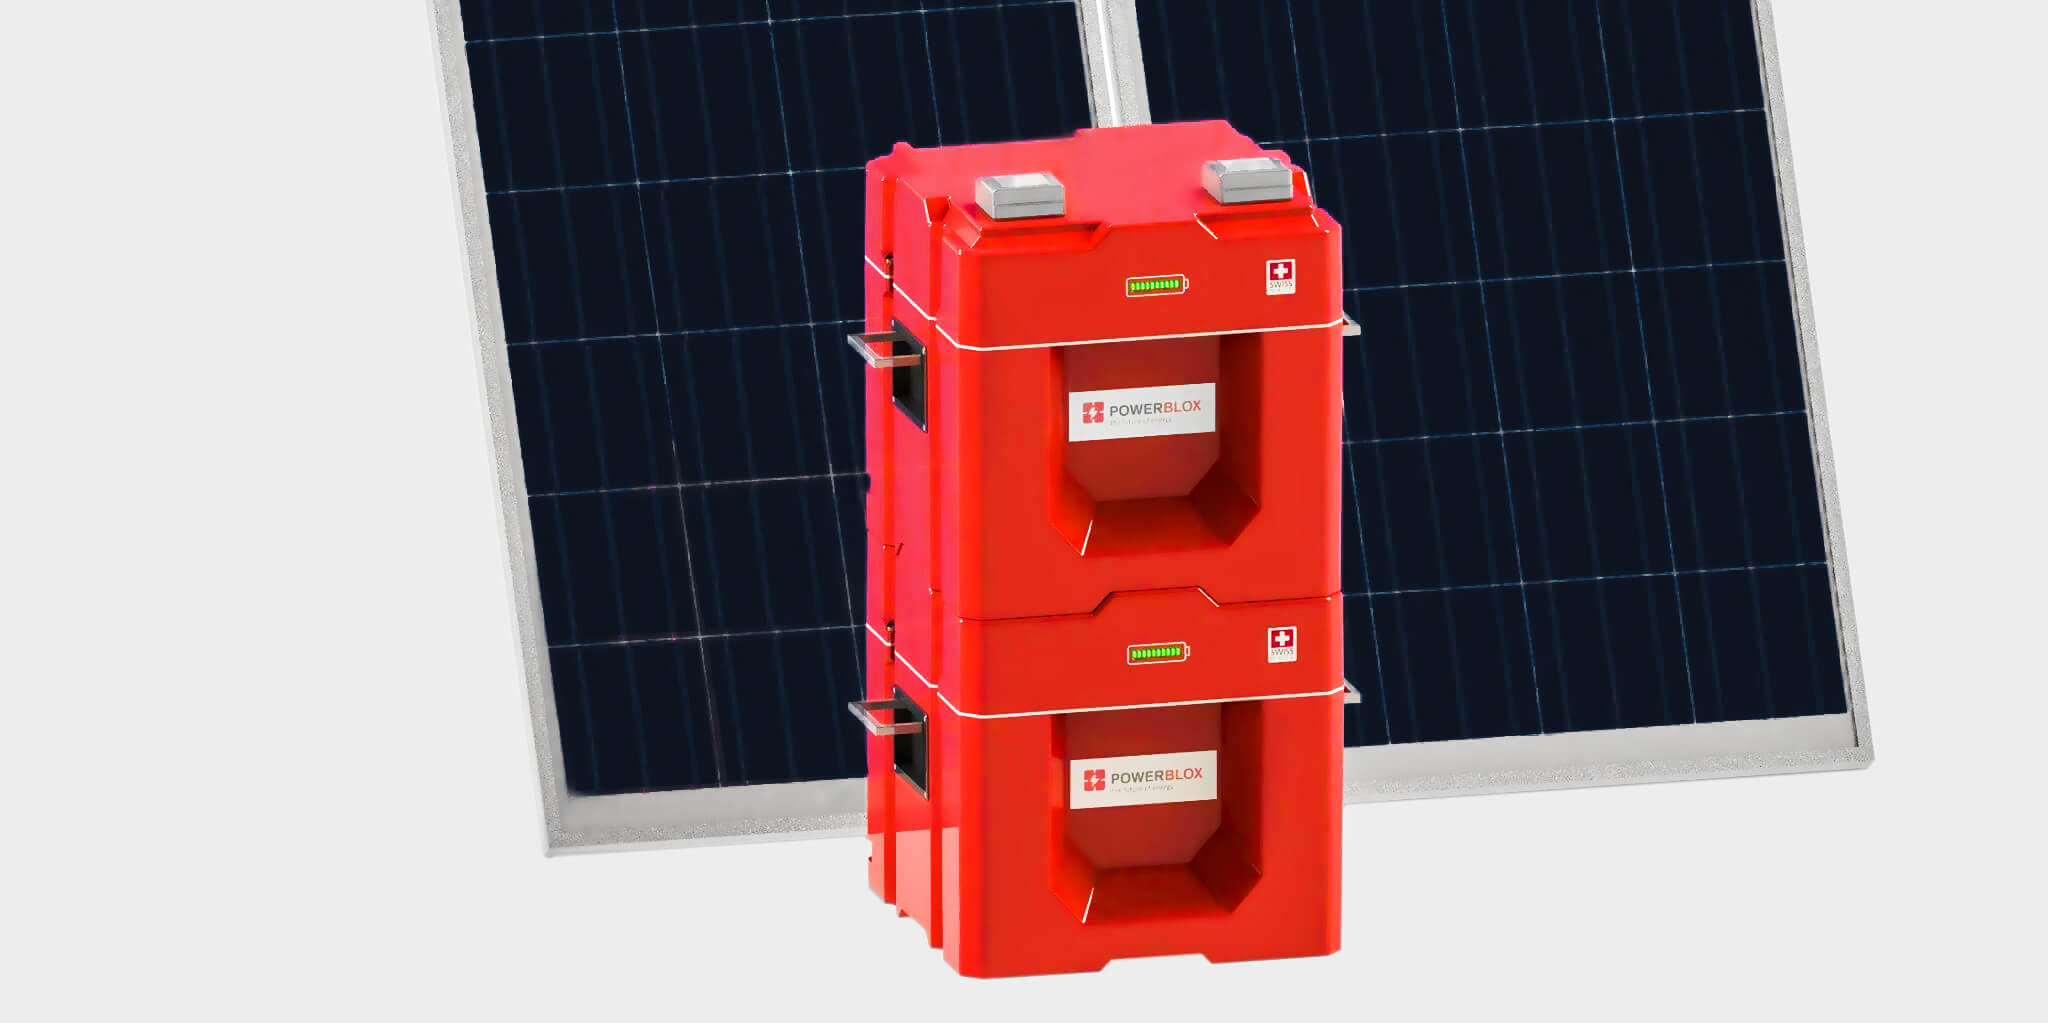 Stäubli_PowerBlox_Solar Staubli And Power-Blox Partner On Energy Storage